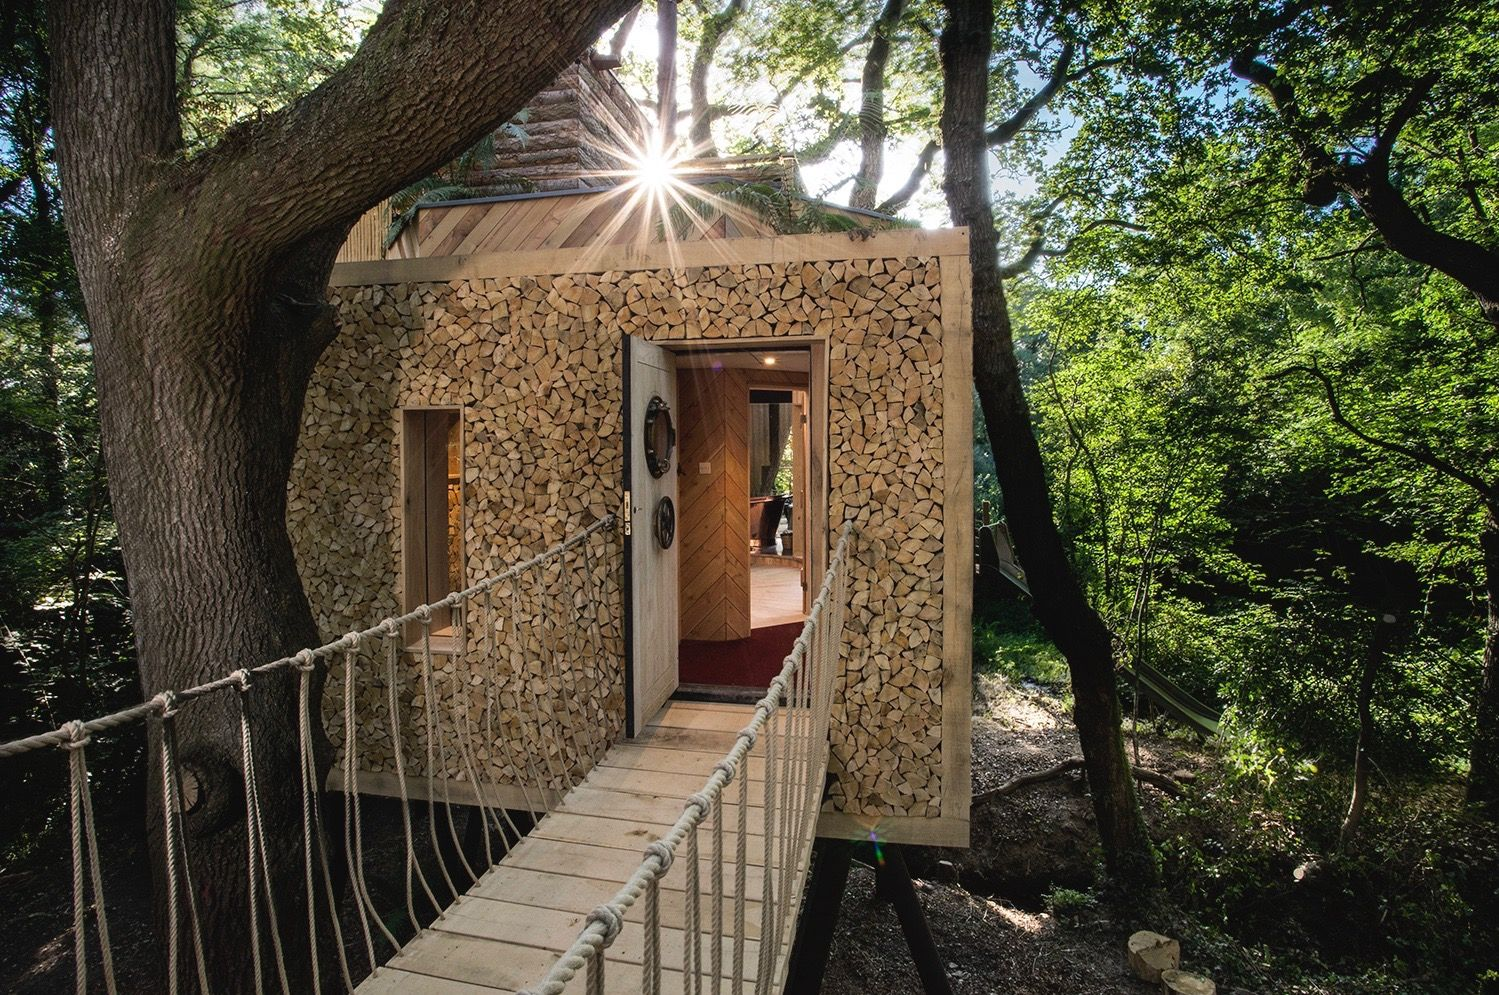 This secluded, sylvan sanctuary is a glamping Shangri-La. Deep in the heart of West Dorset, Crafty Camping features hand-crafted yurts, a wood-fired pizza oven and sauna!